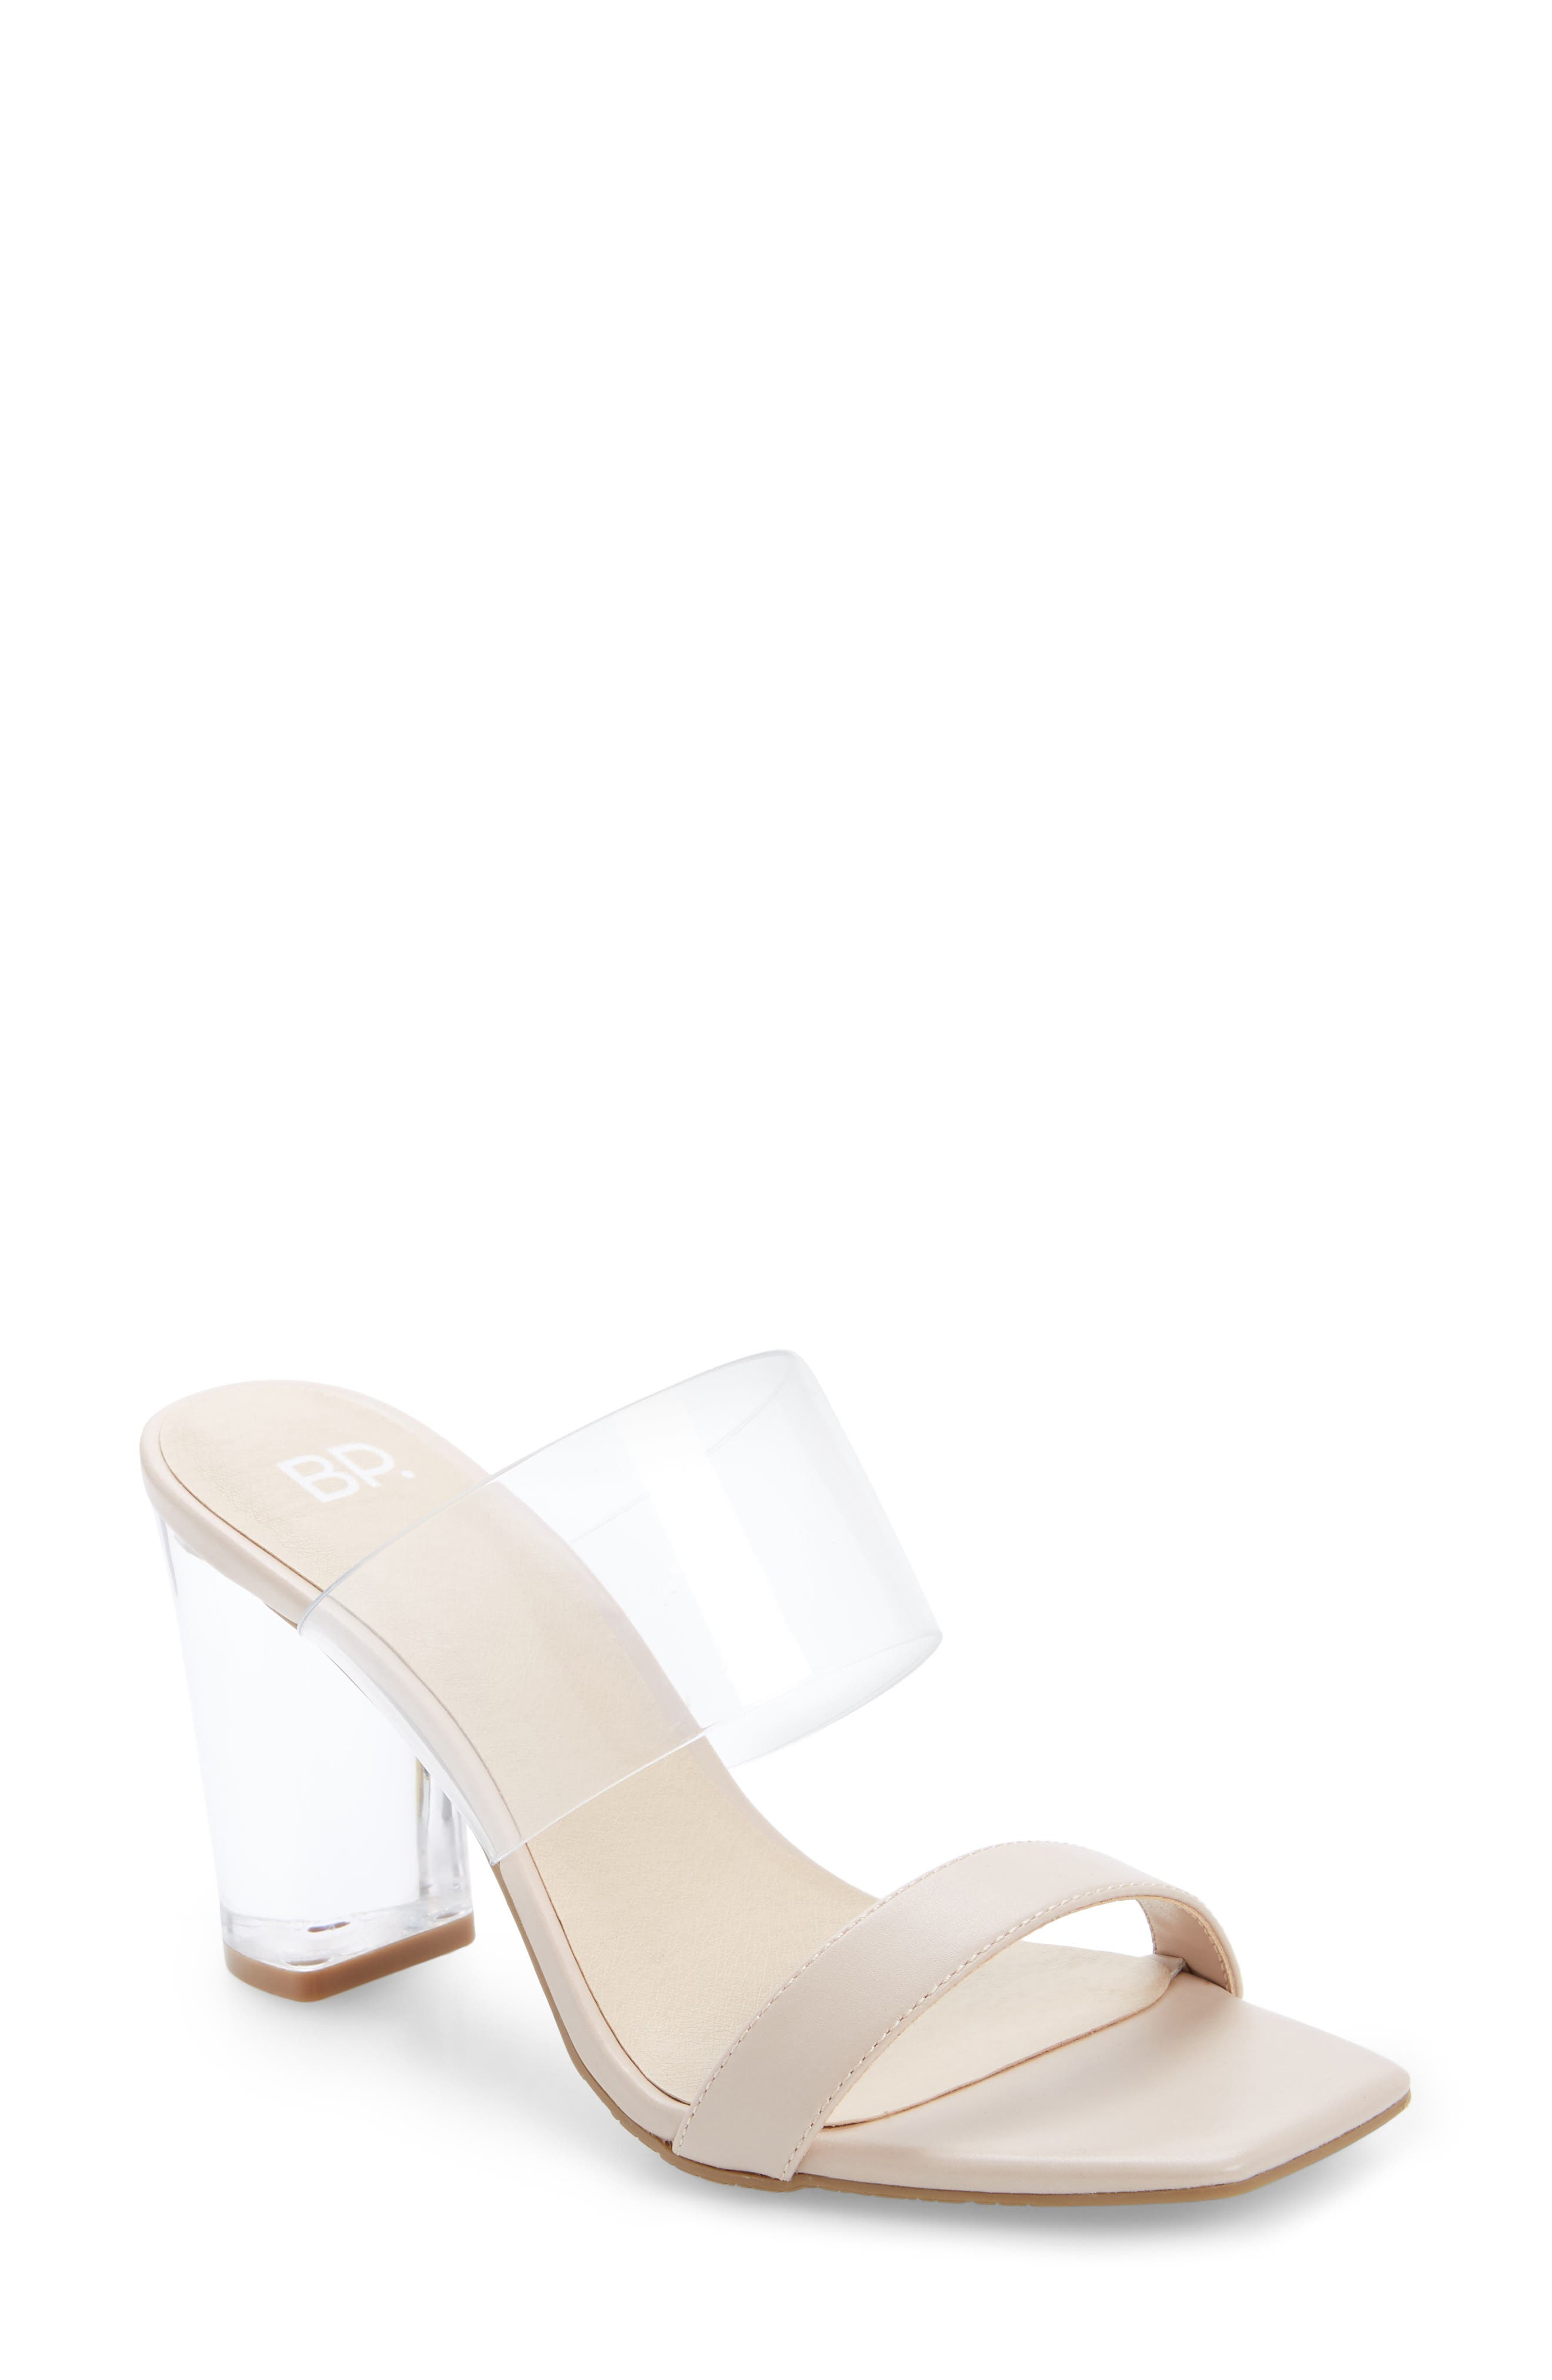 A transparent heel heightens the modern intrigue of this sleek, minimalist sandal. Style Name: Bp. Naomi Sandal (Women). Style Number: 5874144. Available in stores.